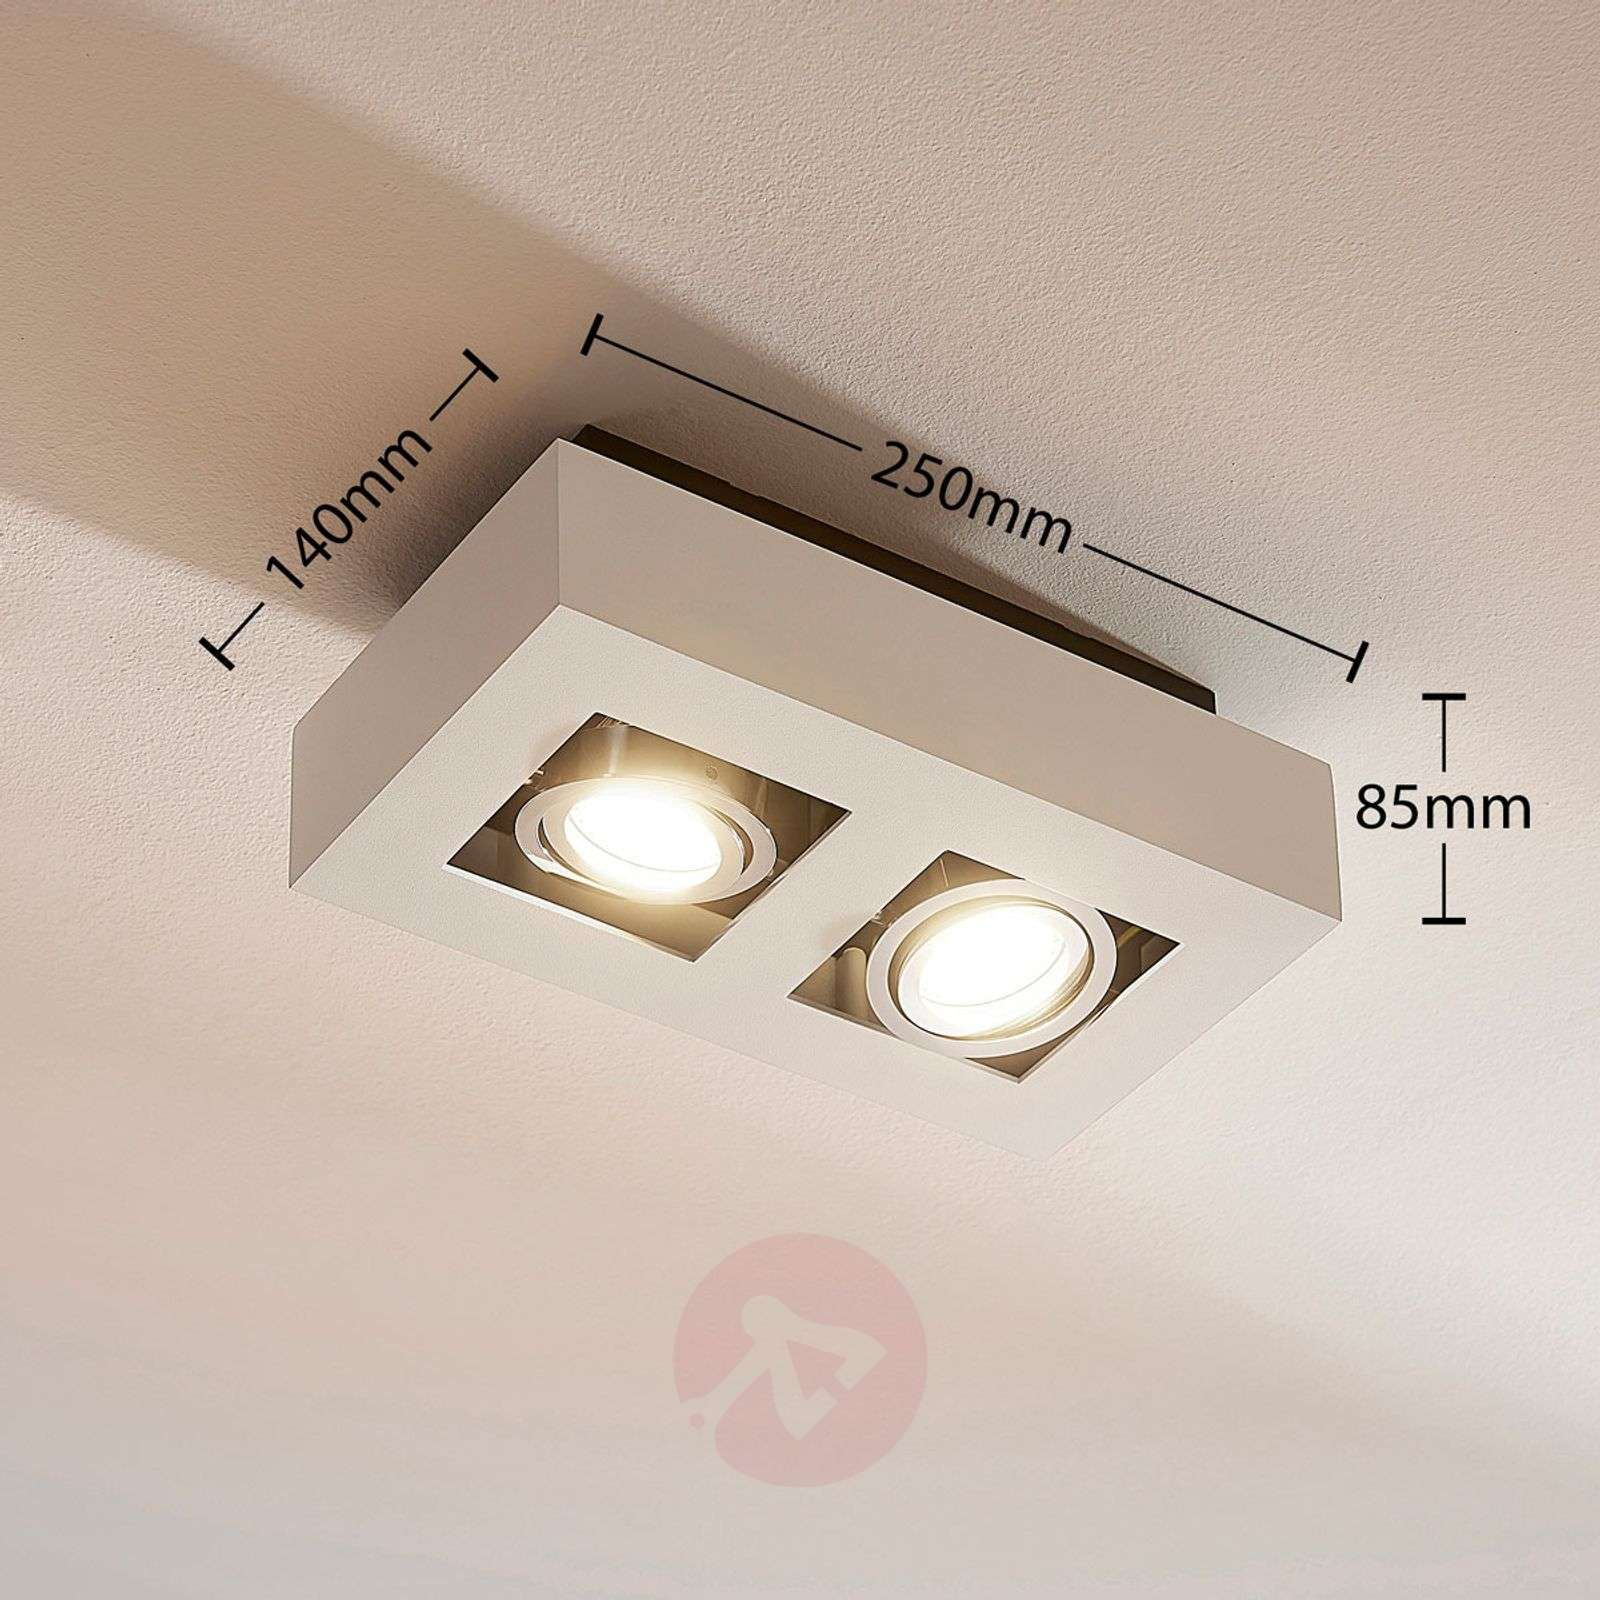 2-lamps LED-spot Vince in wit-9620457-01